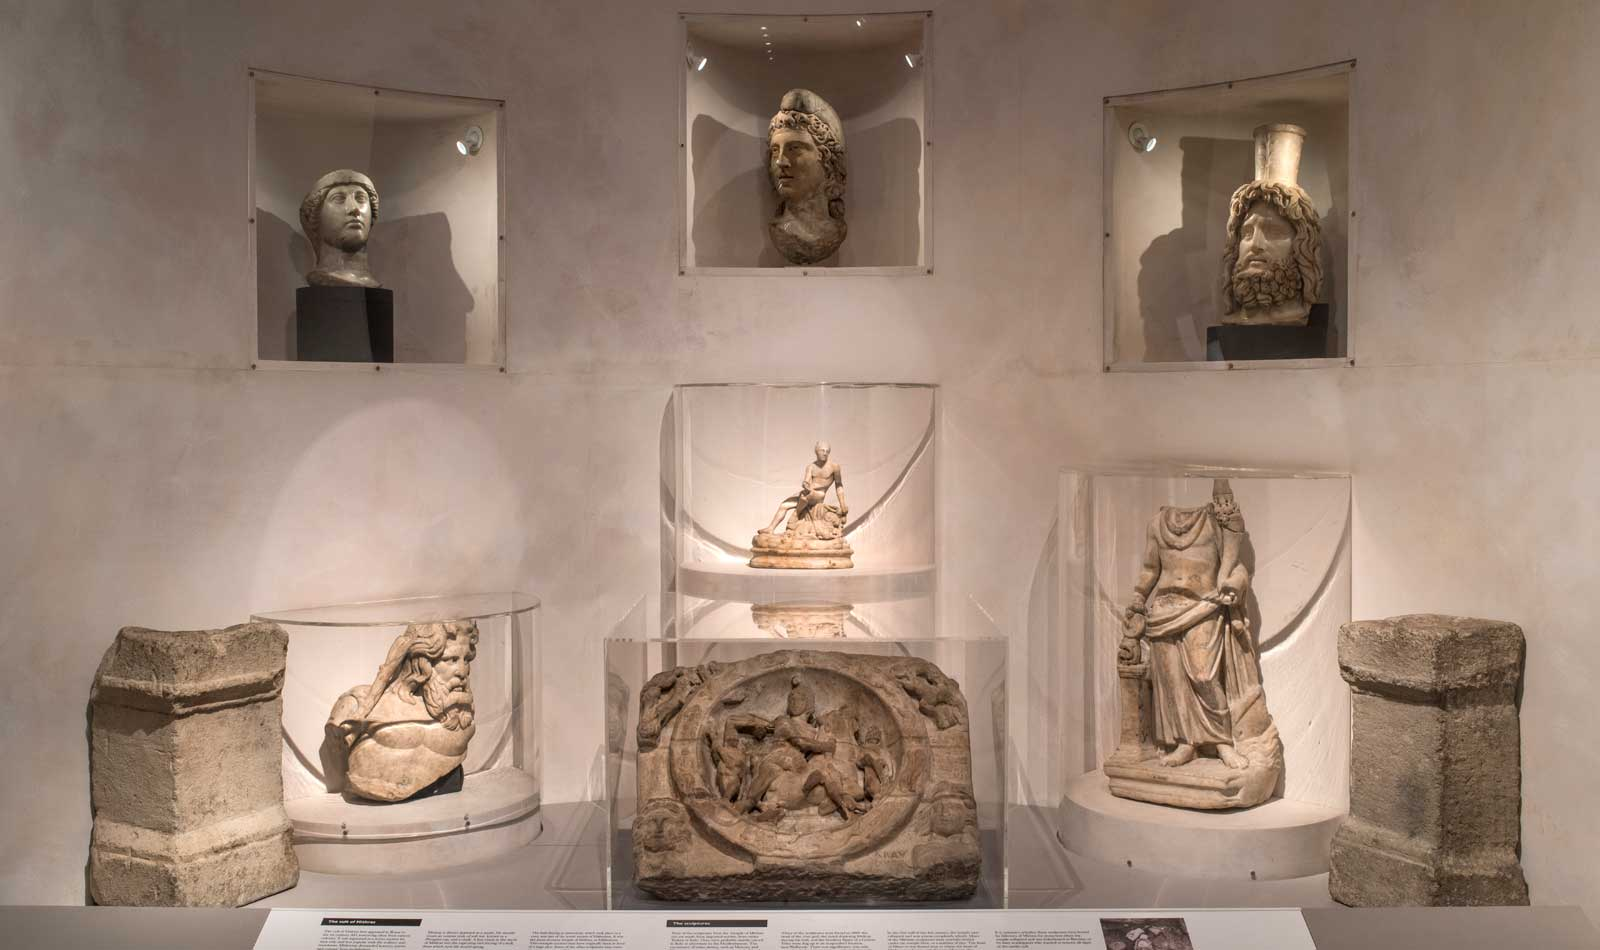 New-Temple-of-Mithras-display.jpg